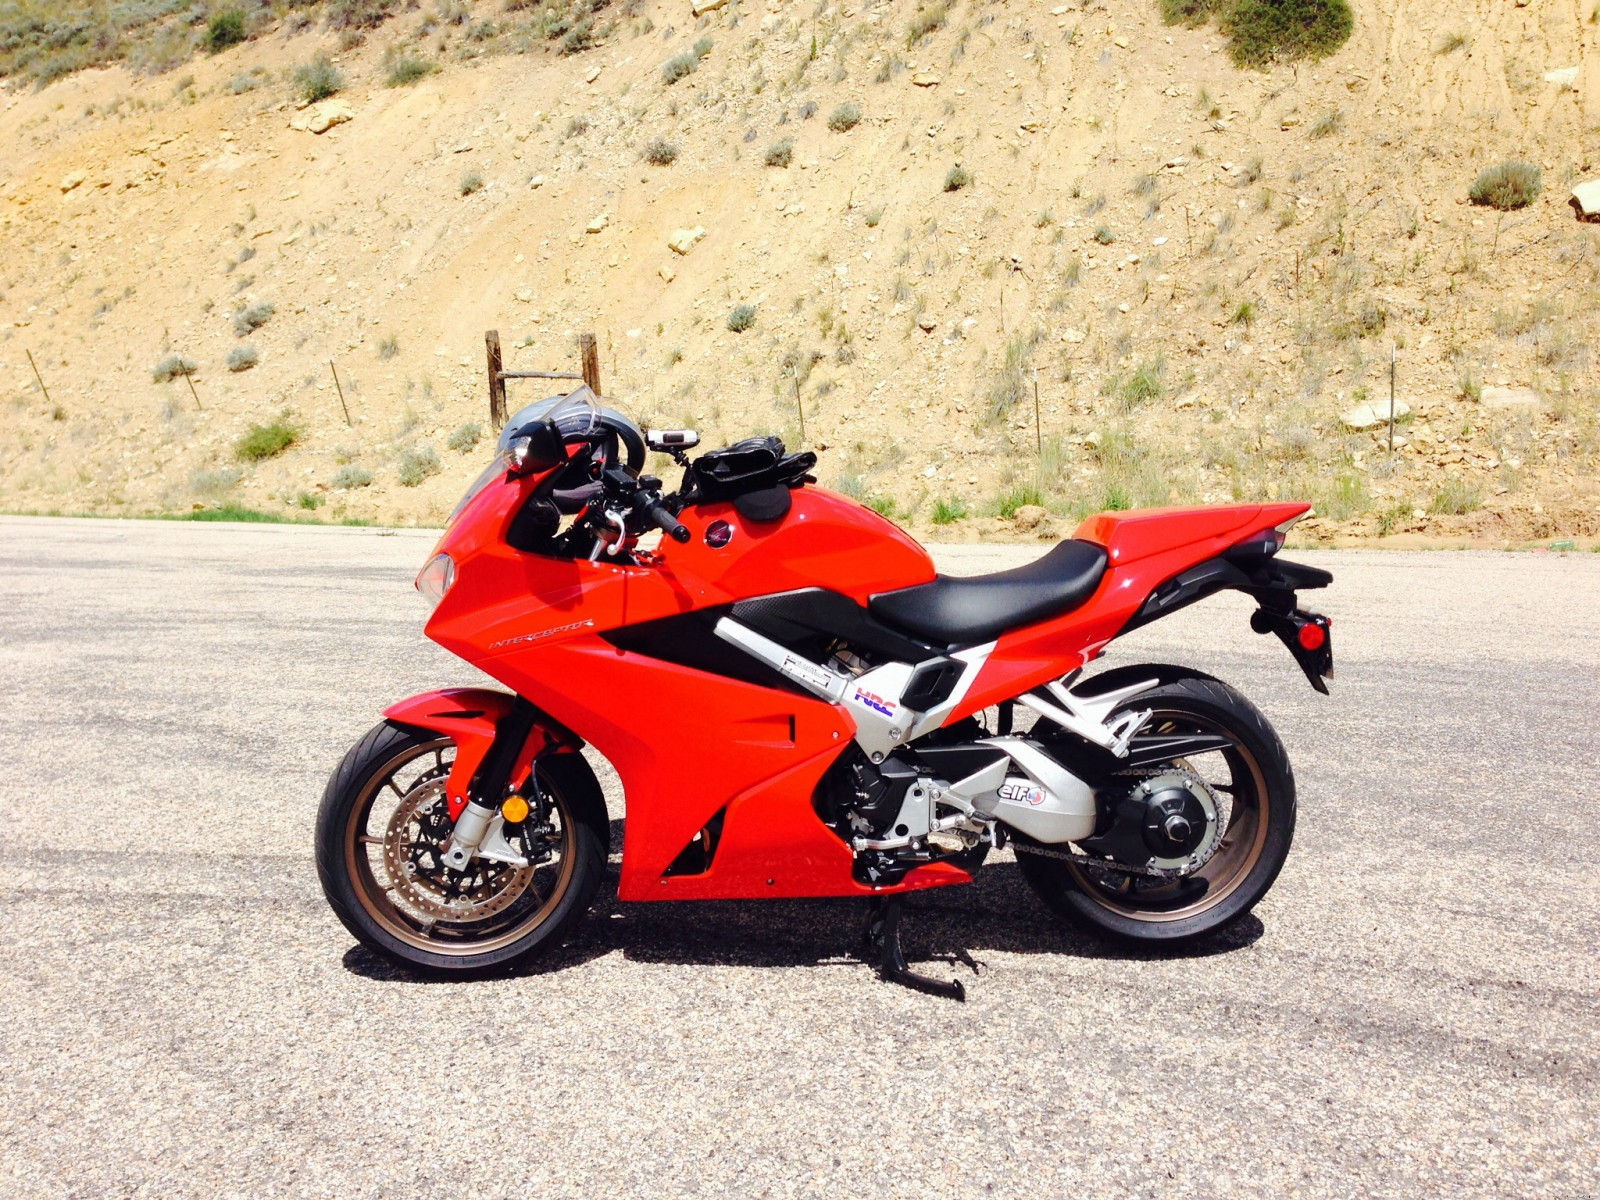 2014 interceptor at wolf creek pass